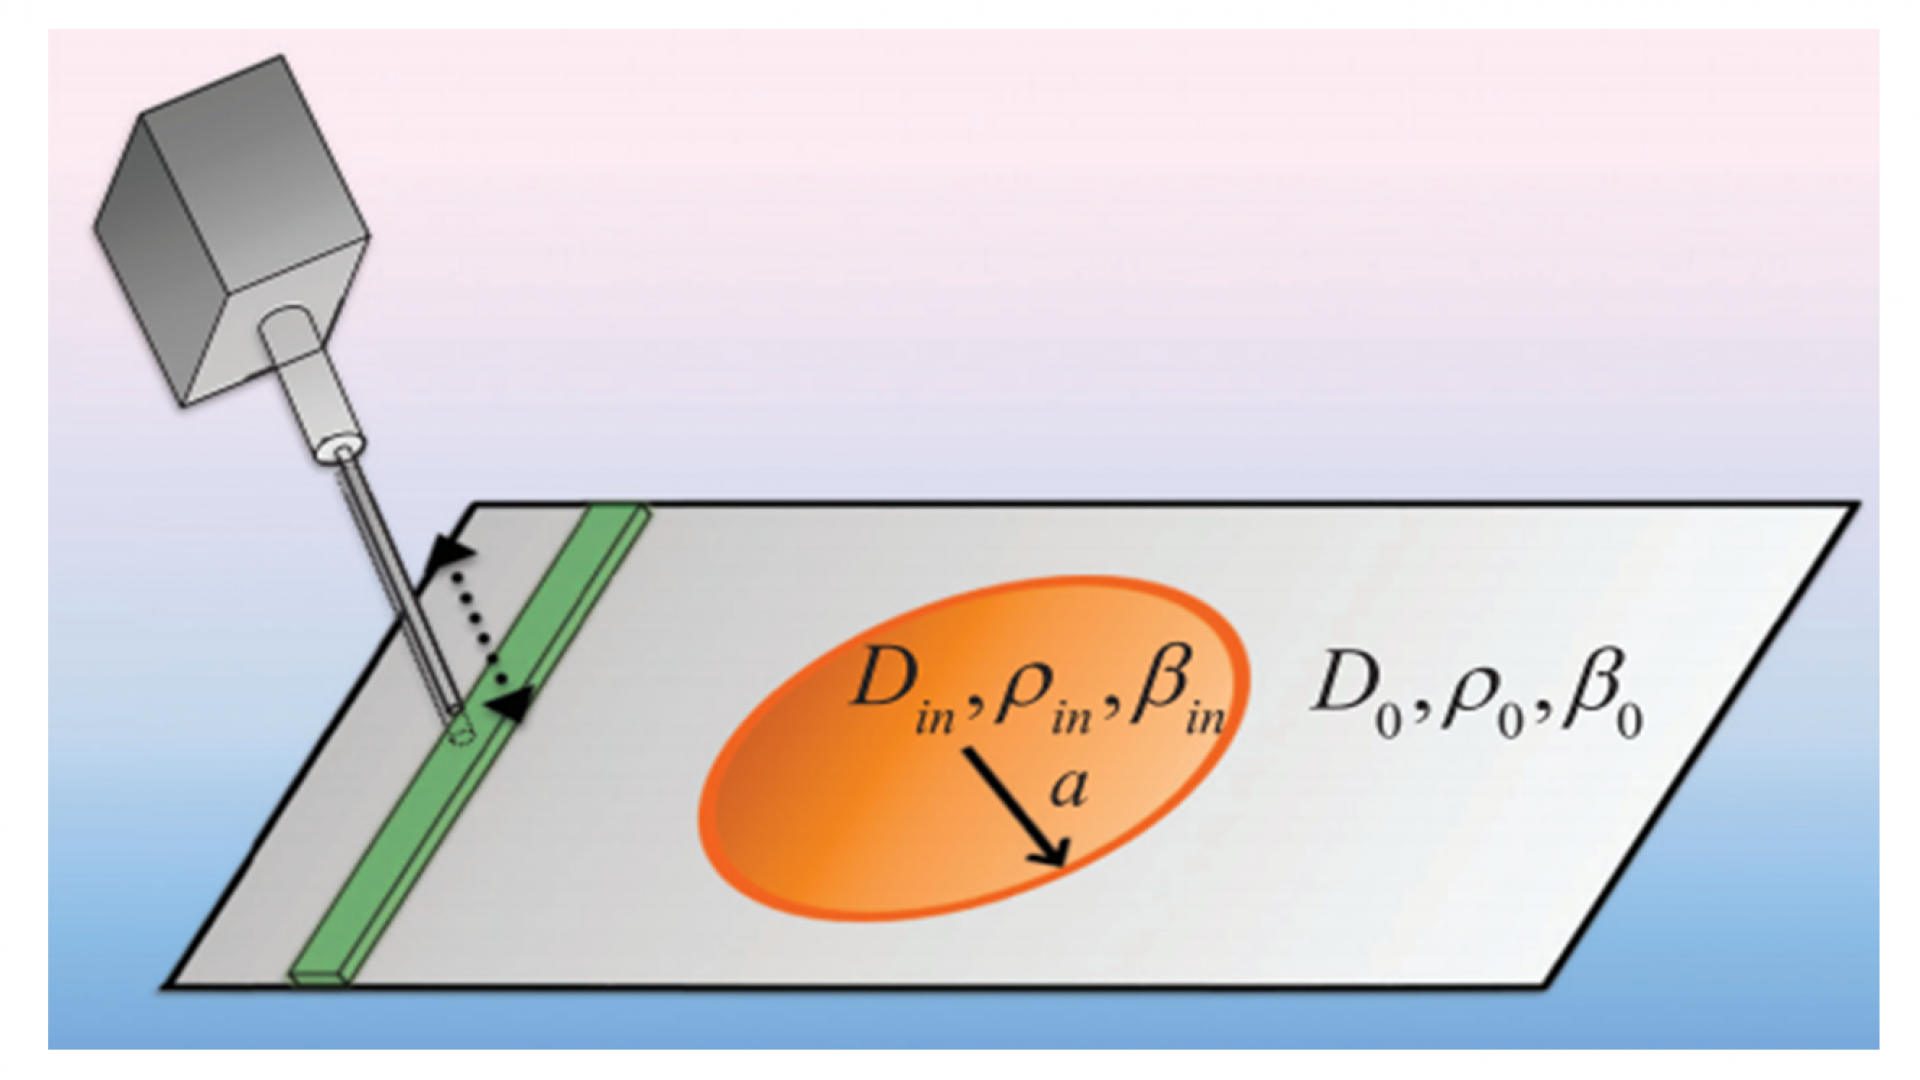 Localized surface plate modes via flexural Mie resonances